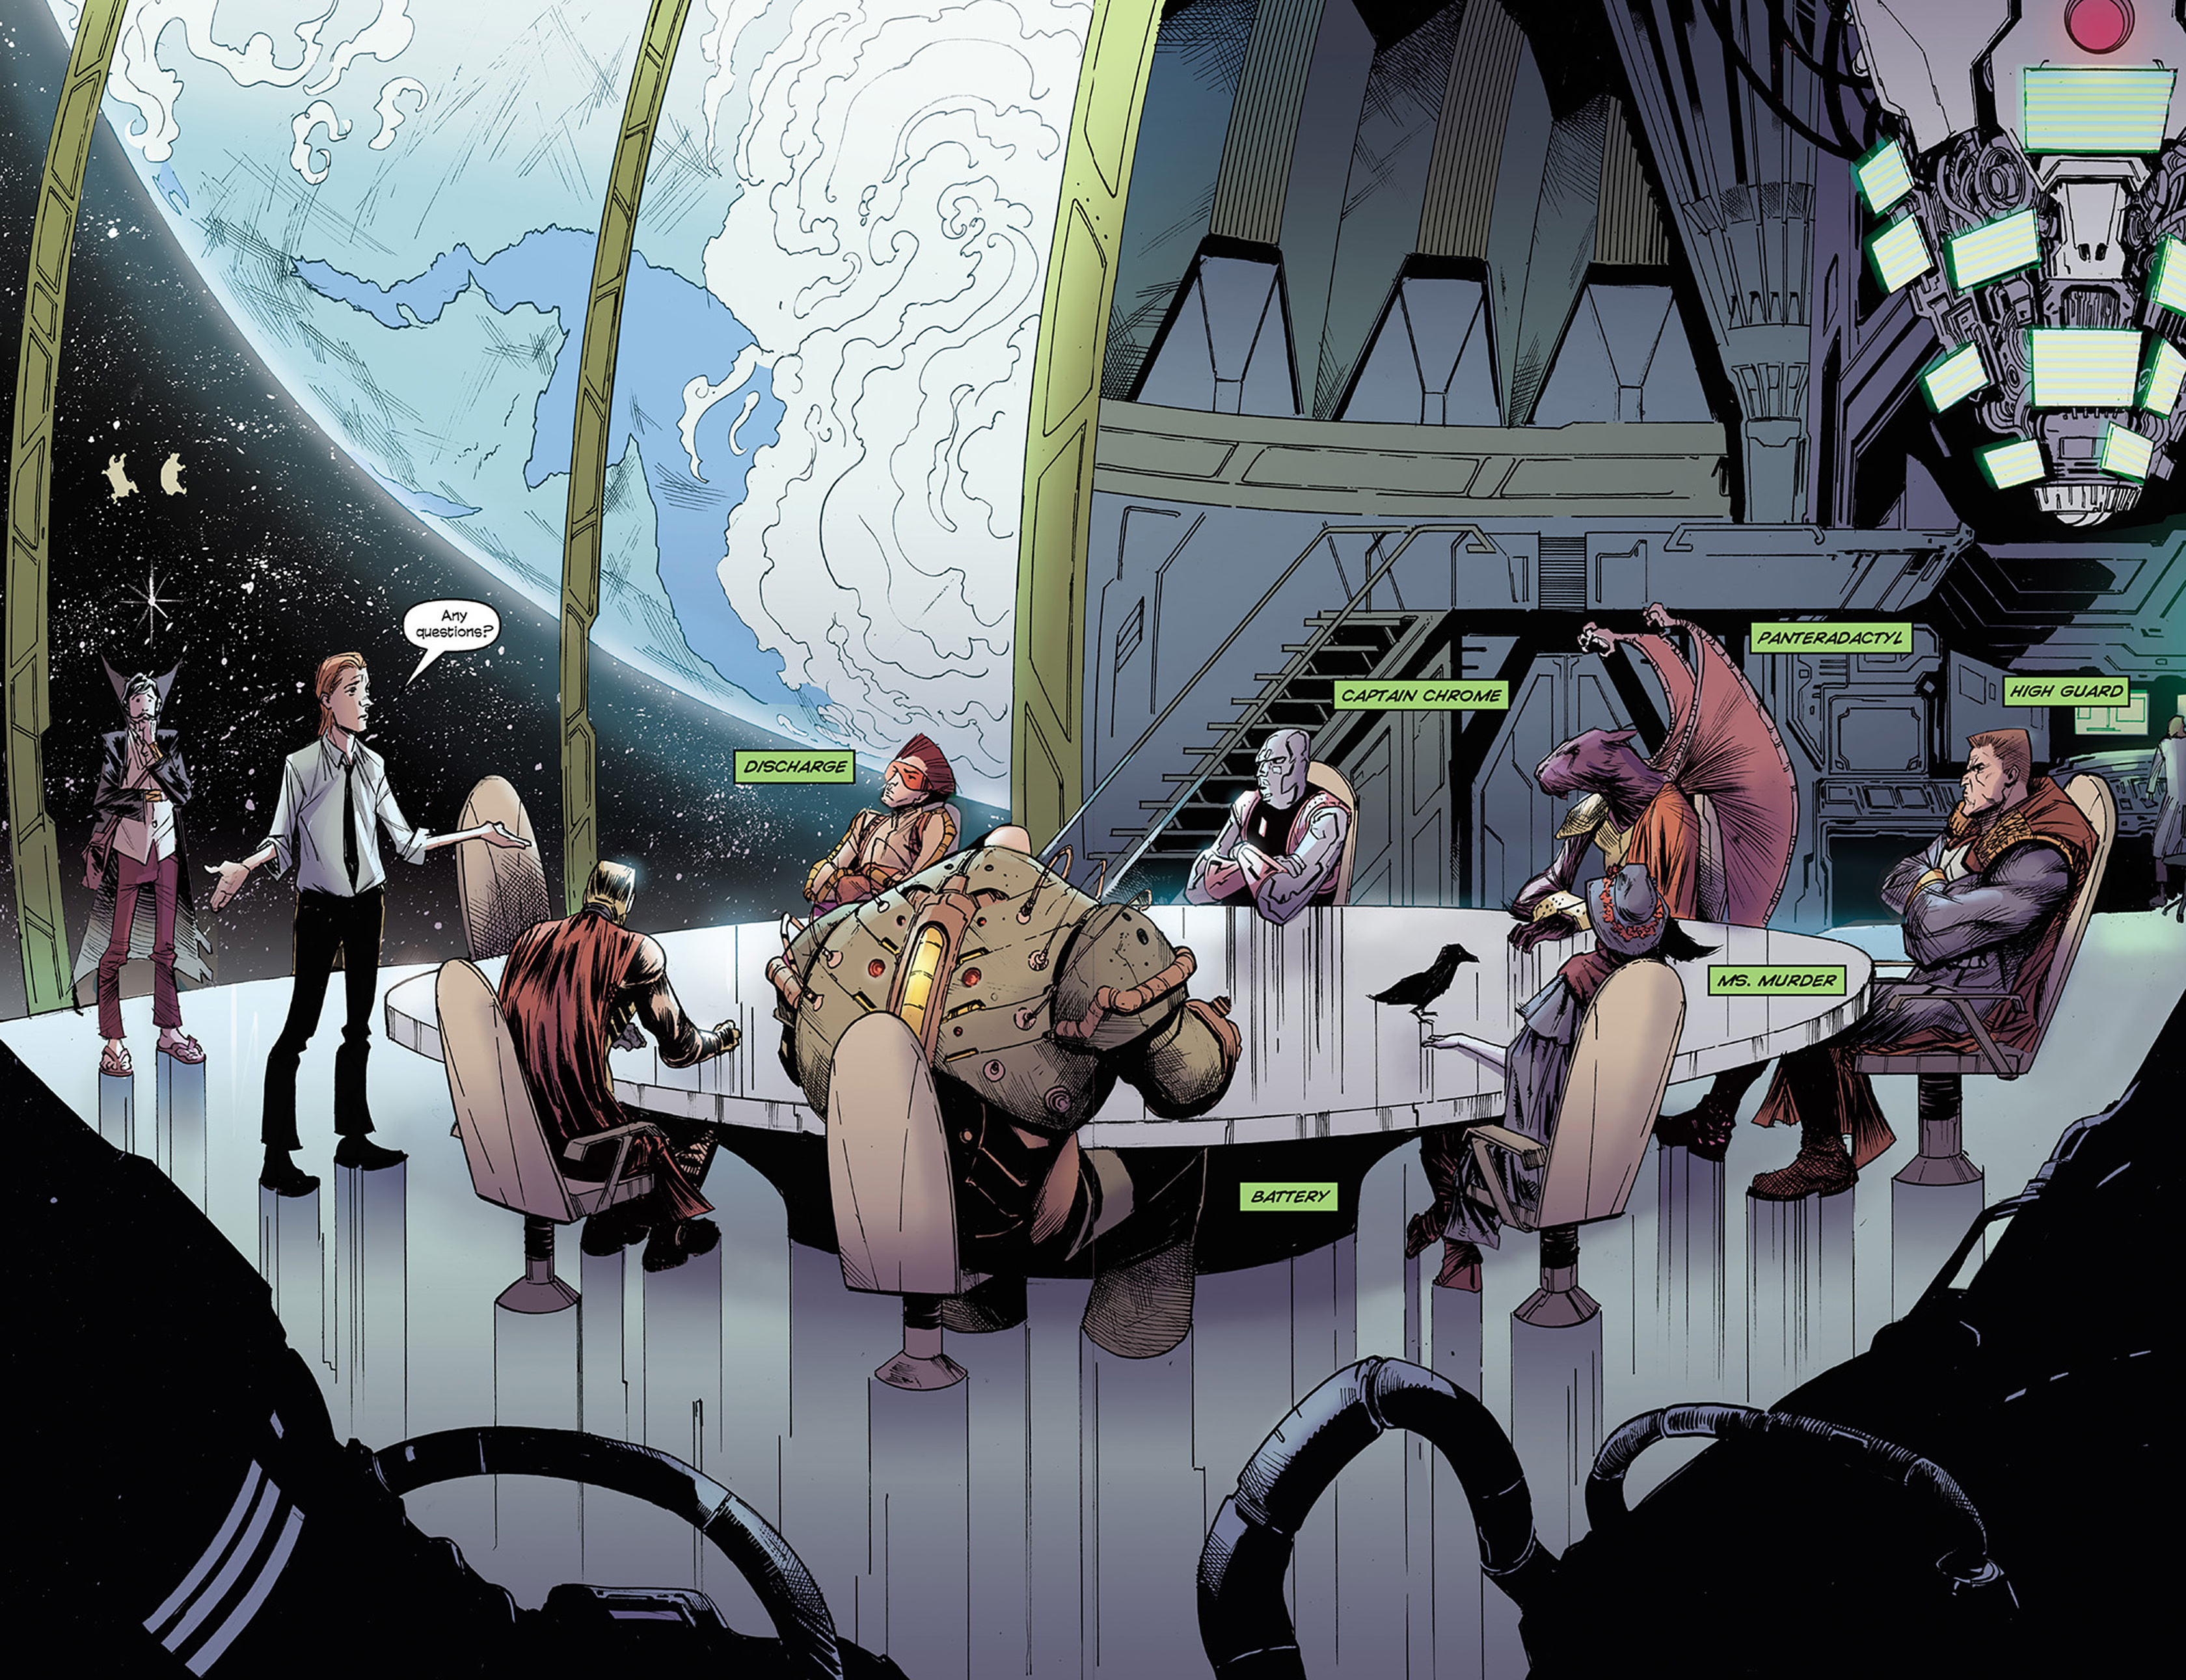 Read online Buzzkill comic -  Issue #3 - 4